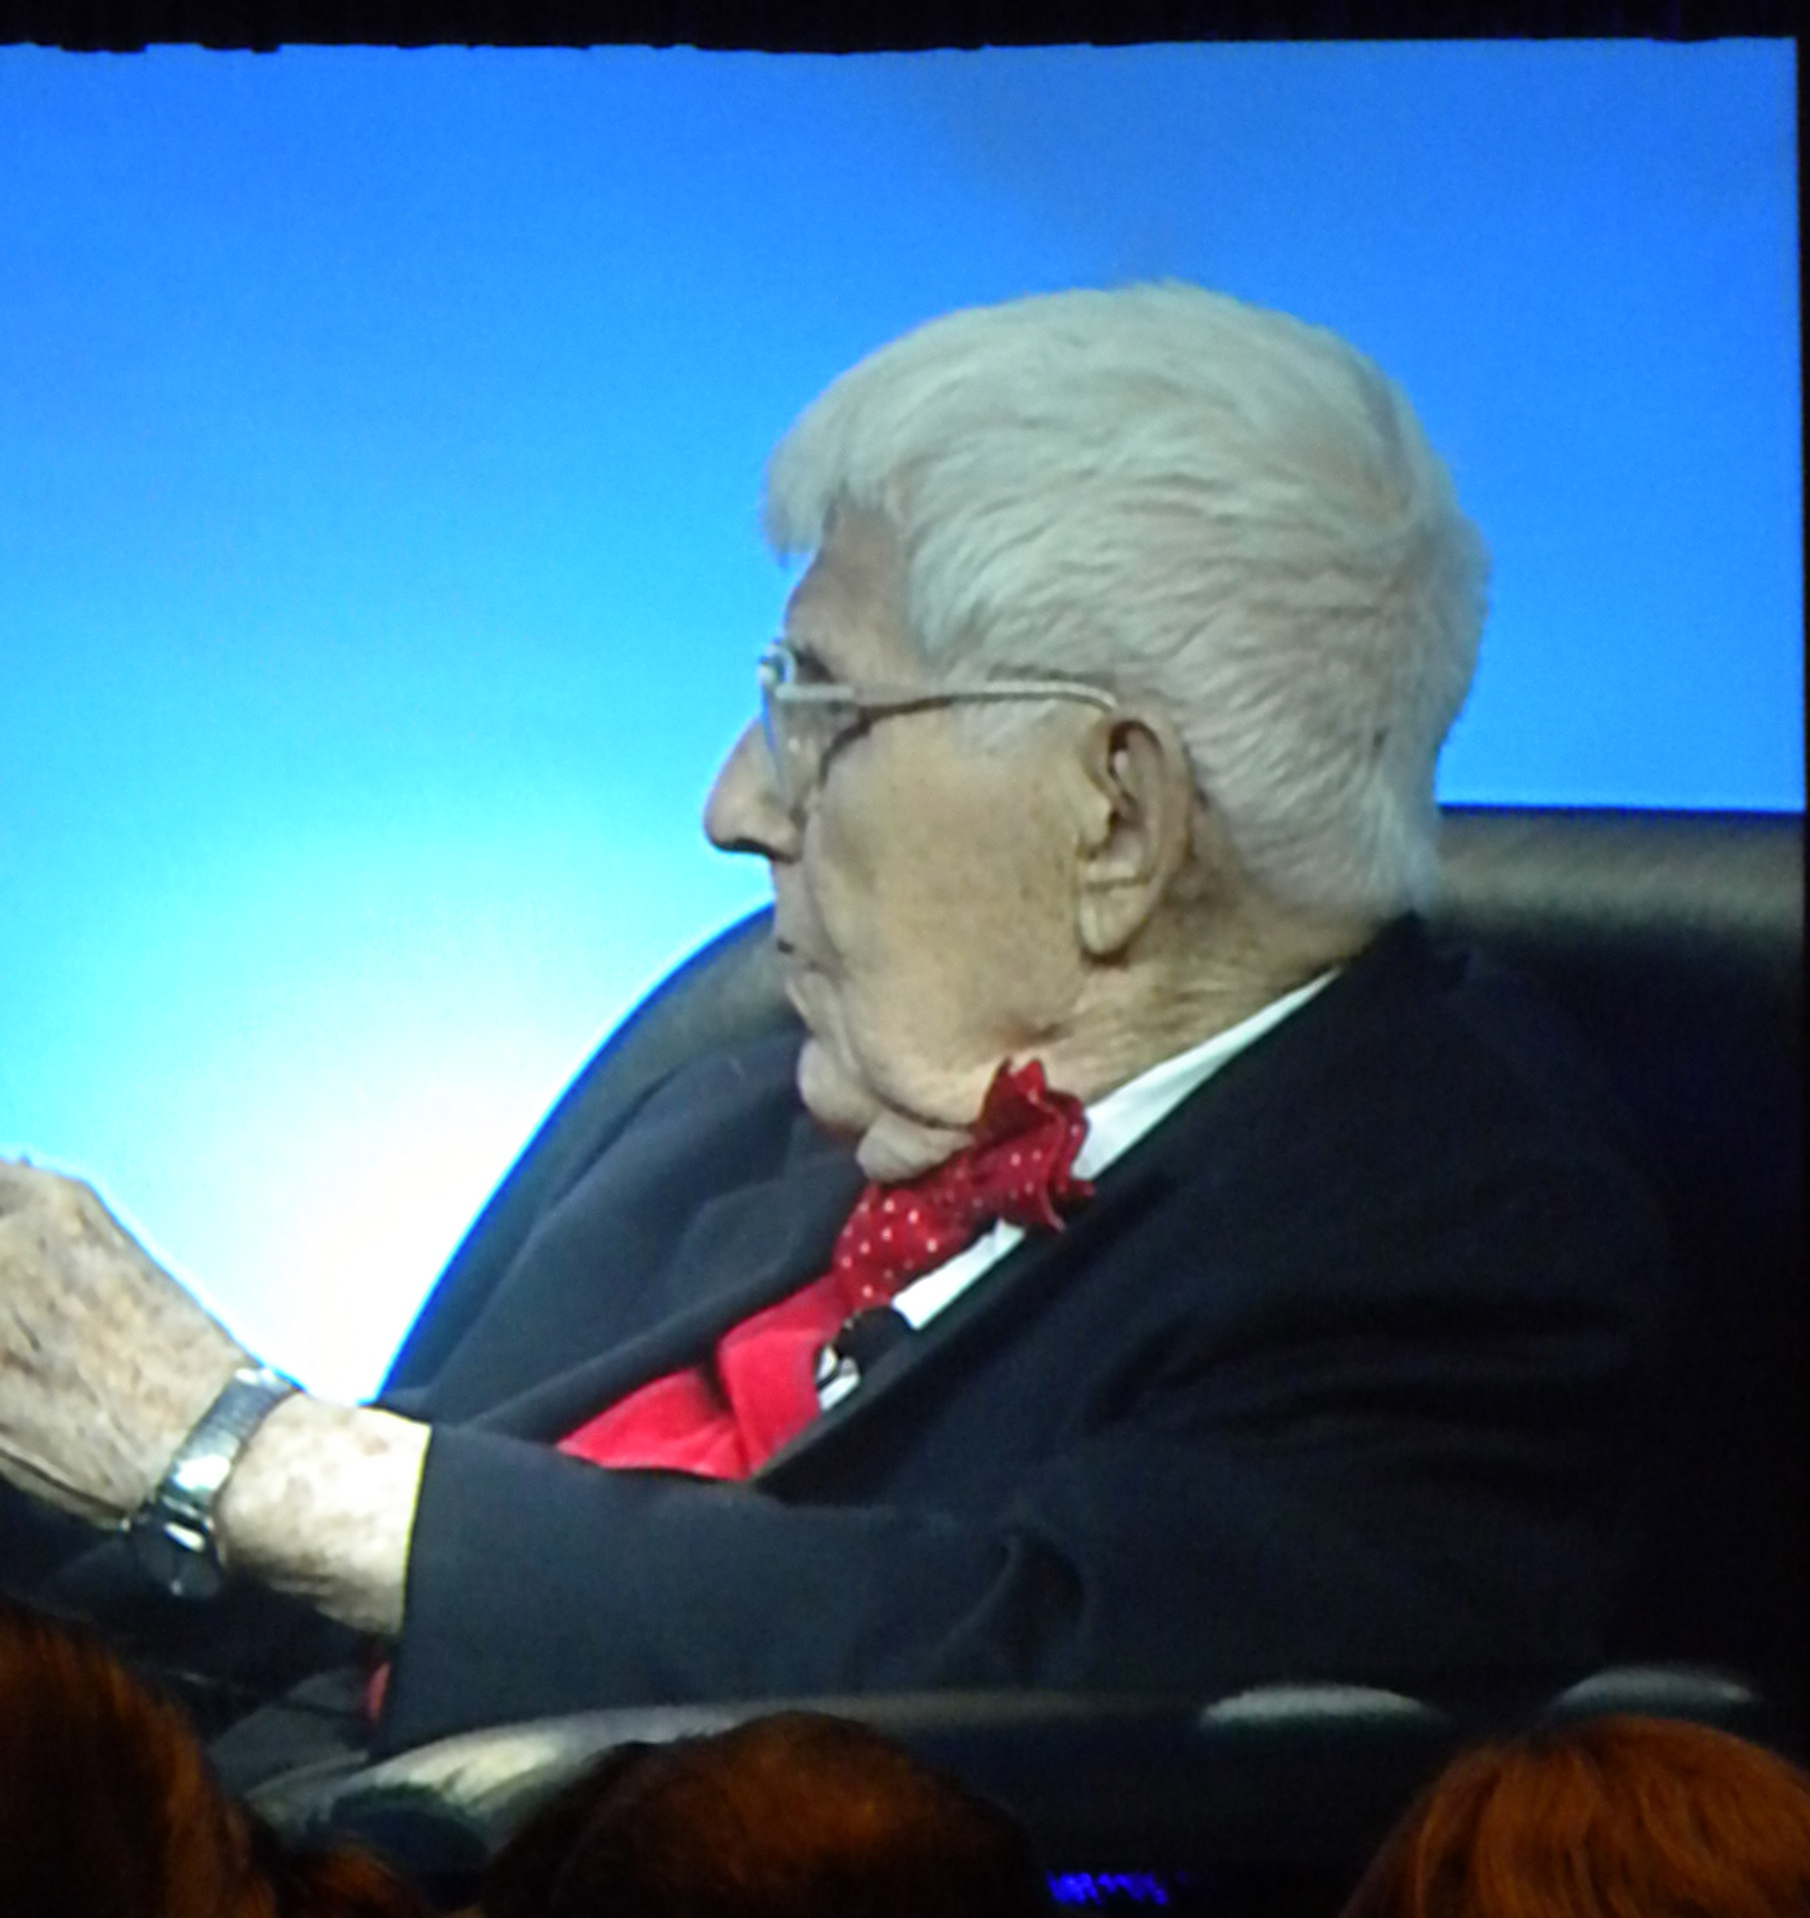 AAron beck speaks at the apa in hawaii, 2011